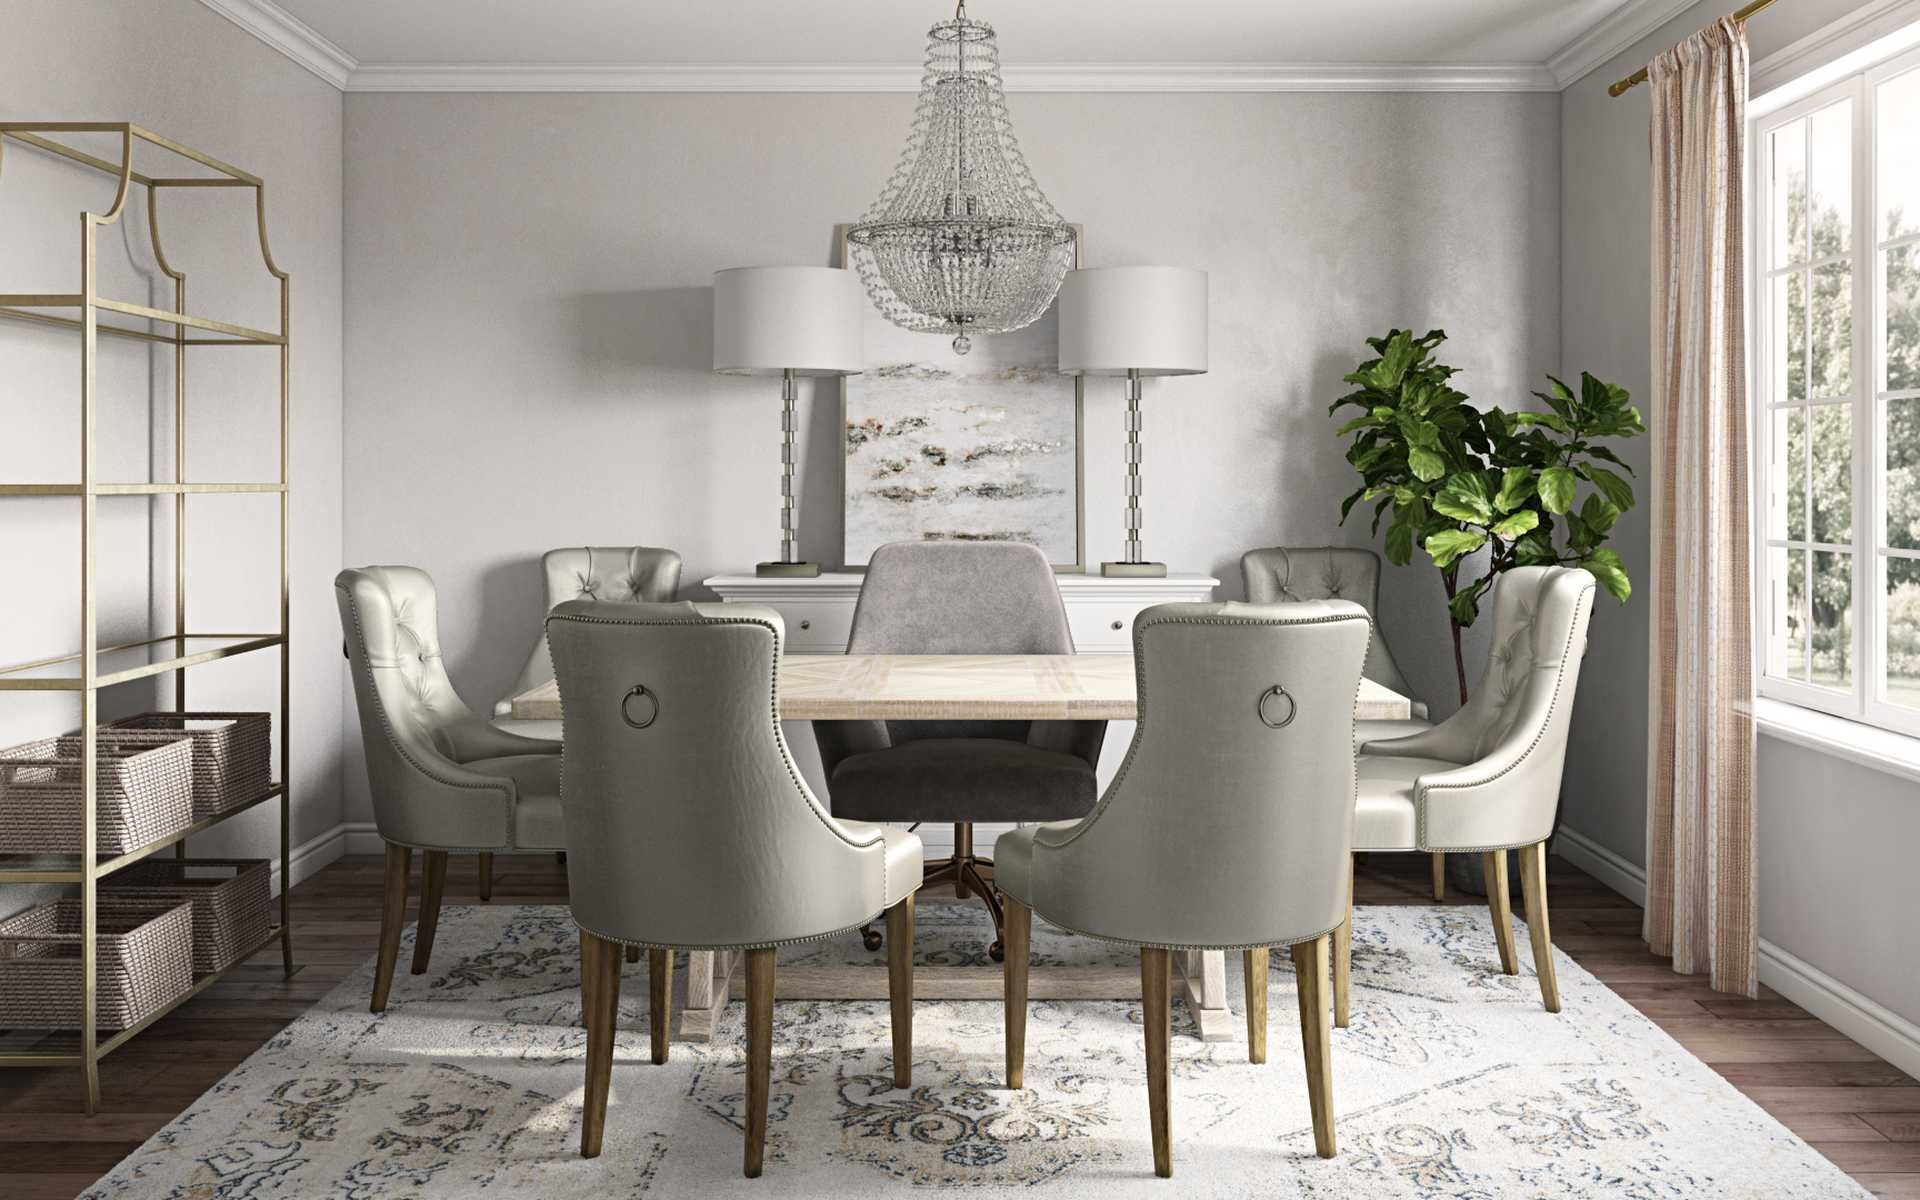 Classic Dining Room Design By Havenly Interior Designer Tracie Dining Room Design Classic Dining Room Classic Room Design